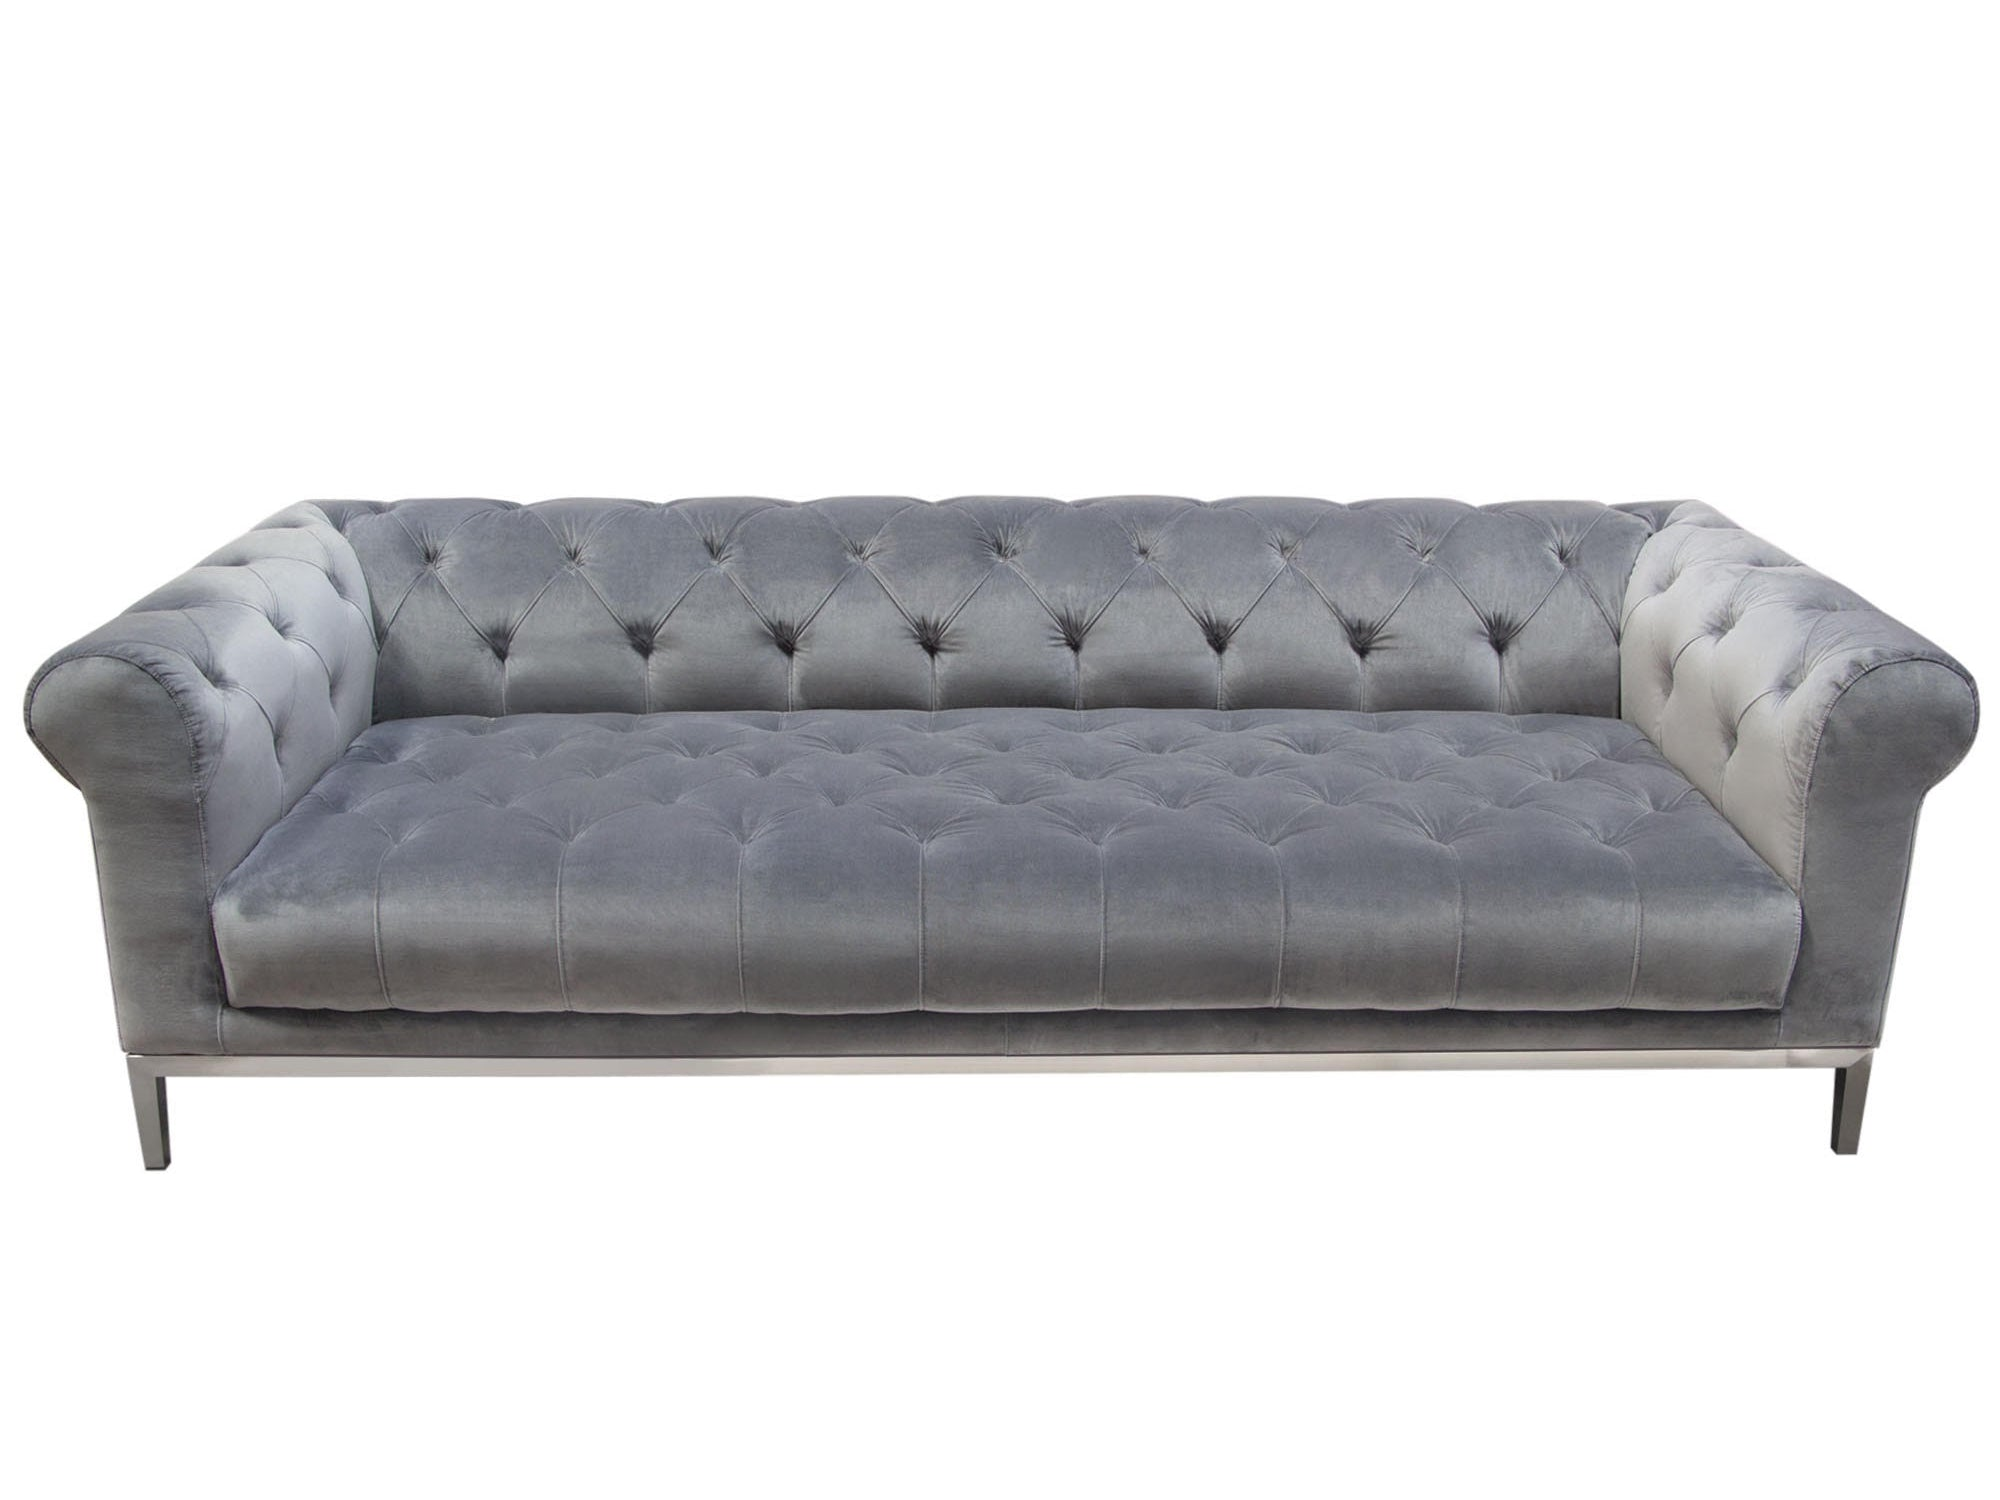 LONDON SOFA - PLATINUM GREY